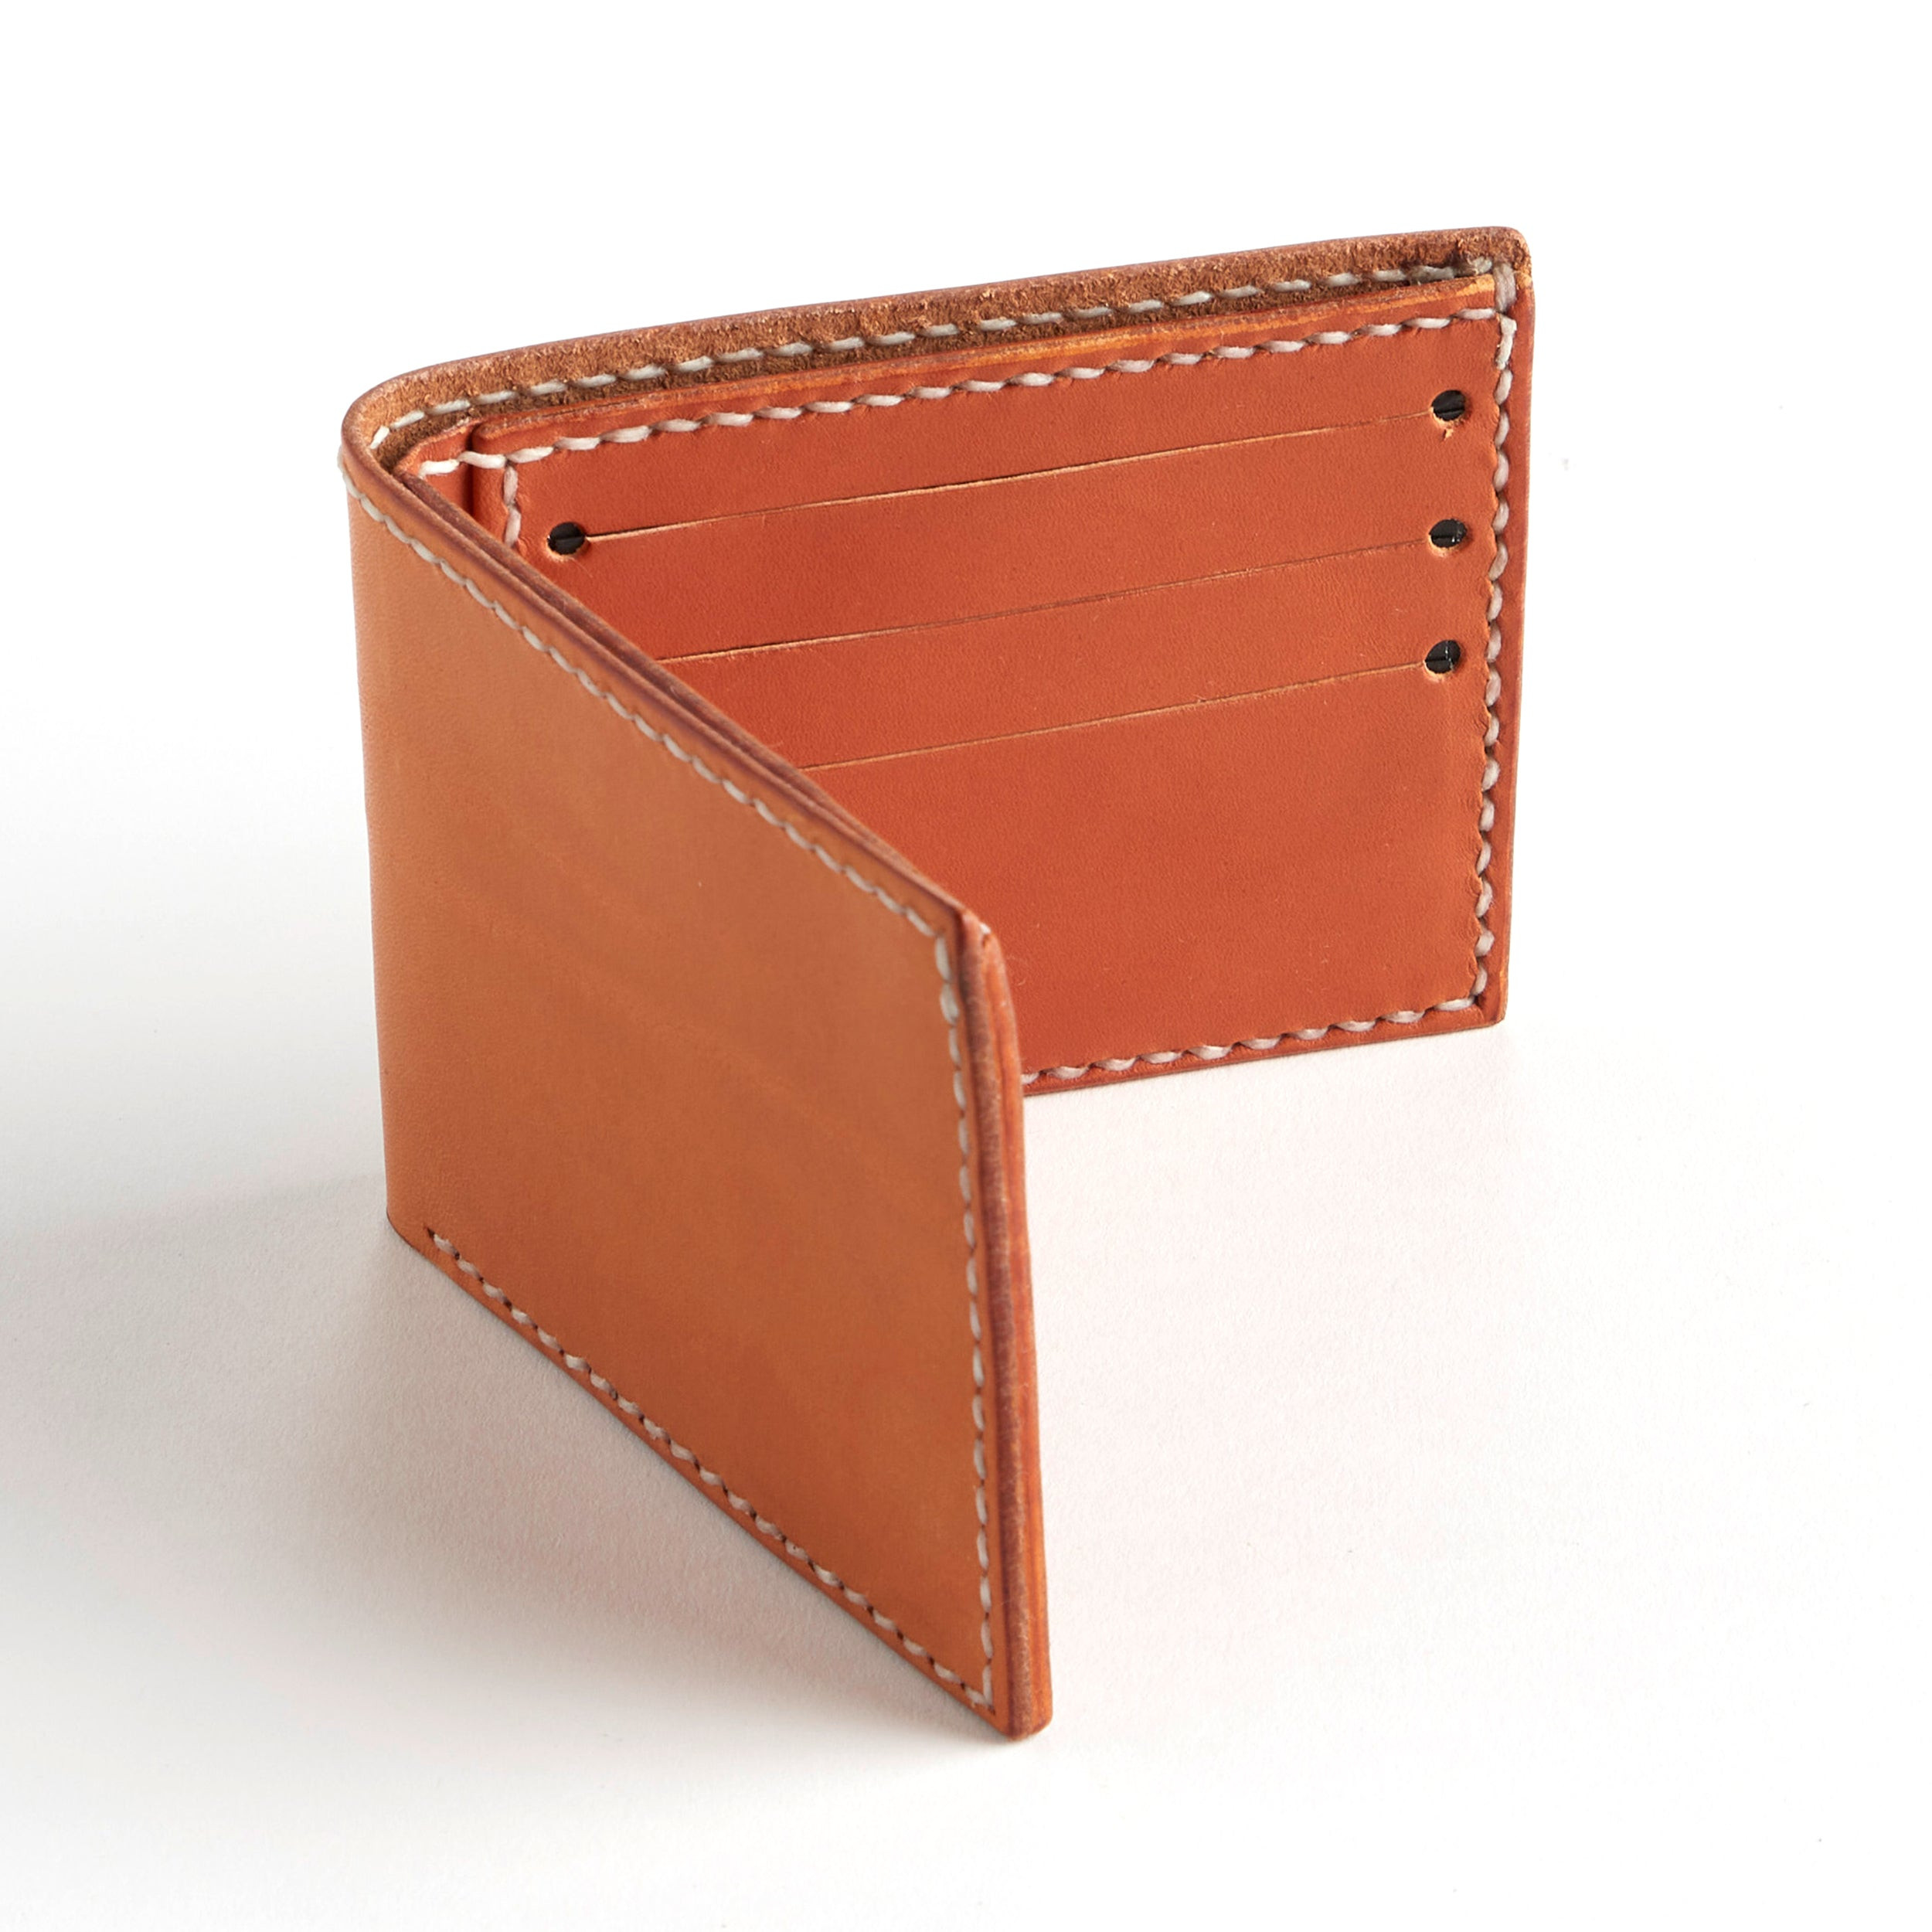 TandyPro® Kits by Makers - Original Billfold